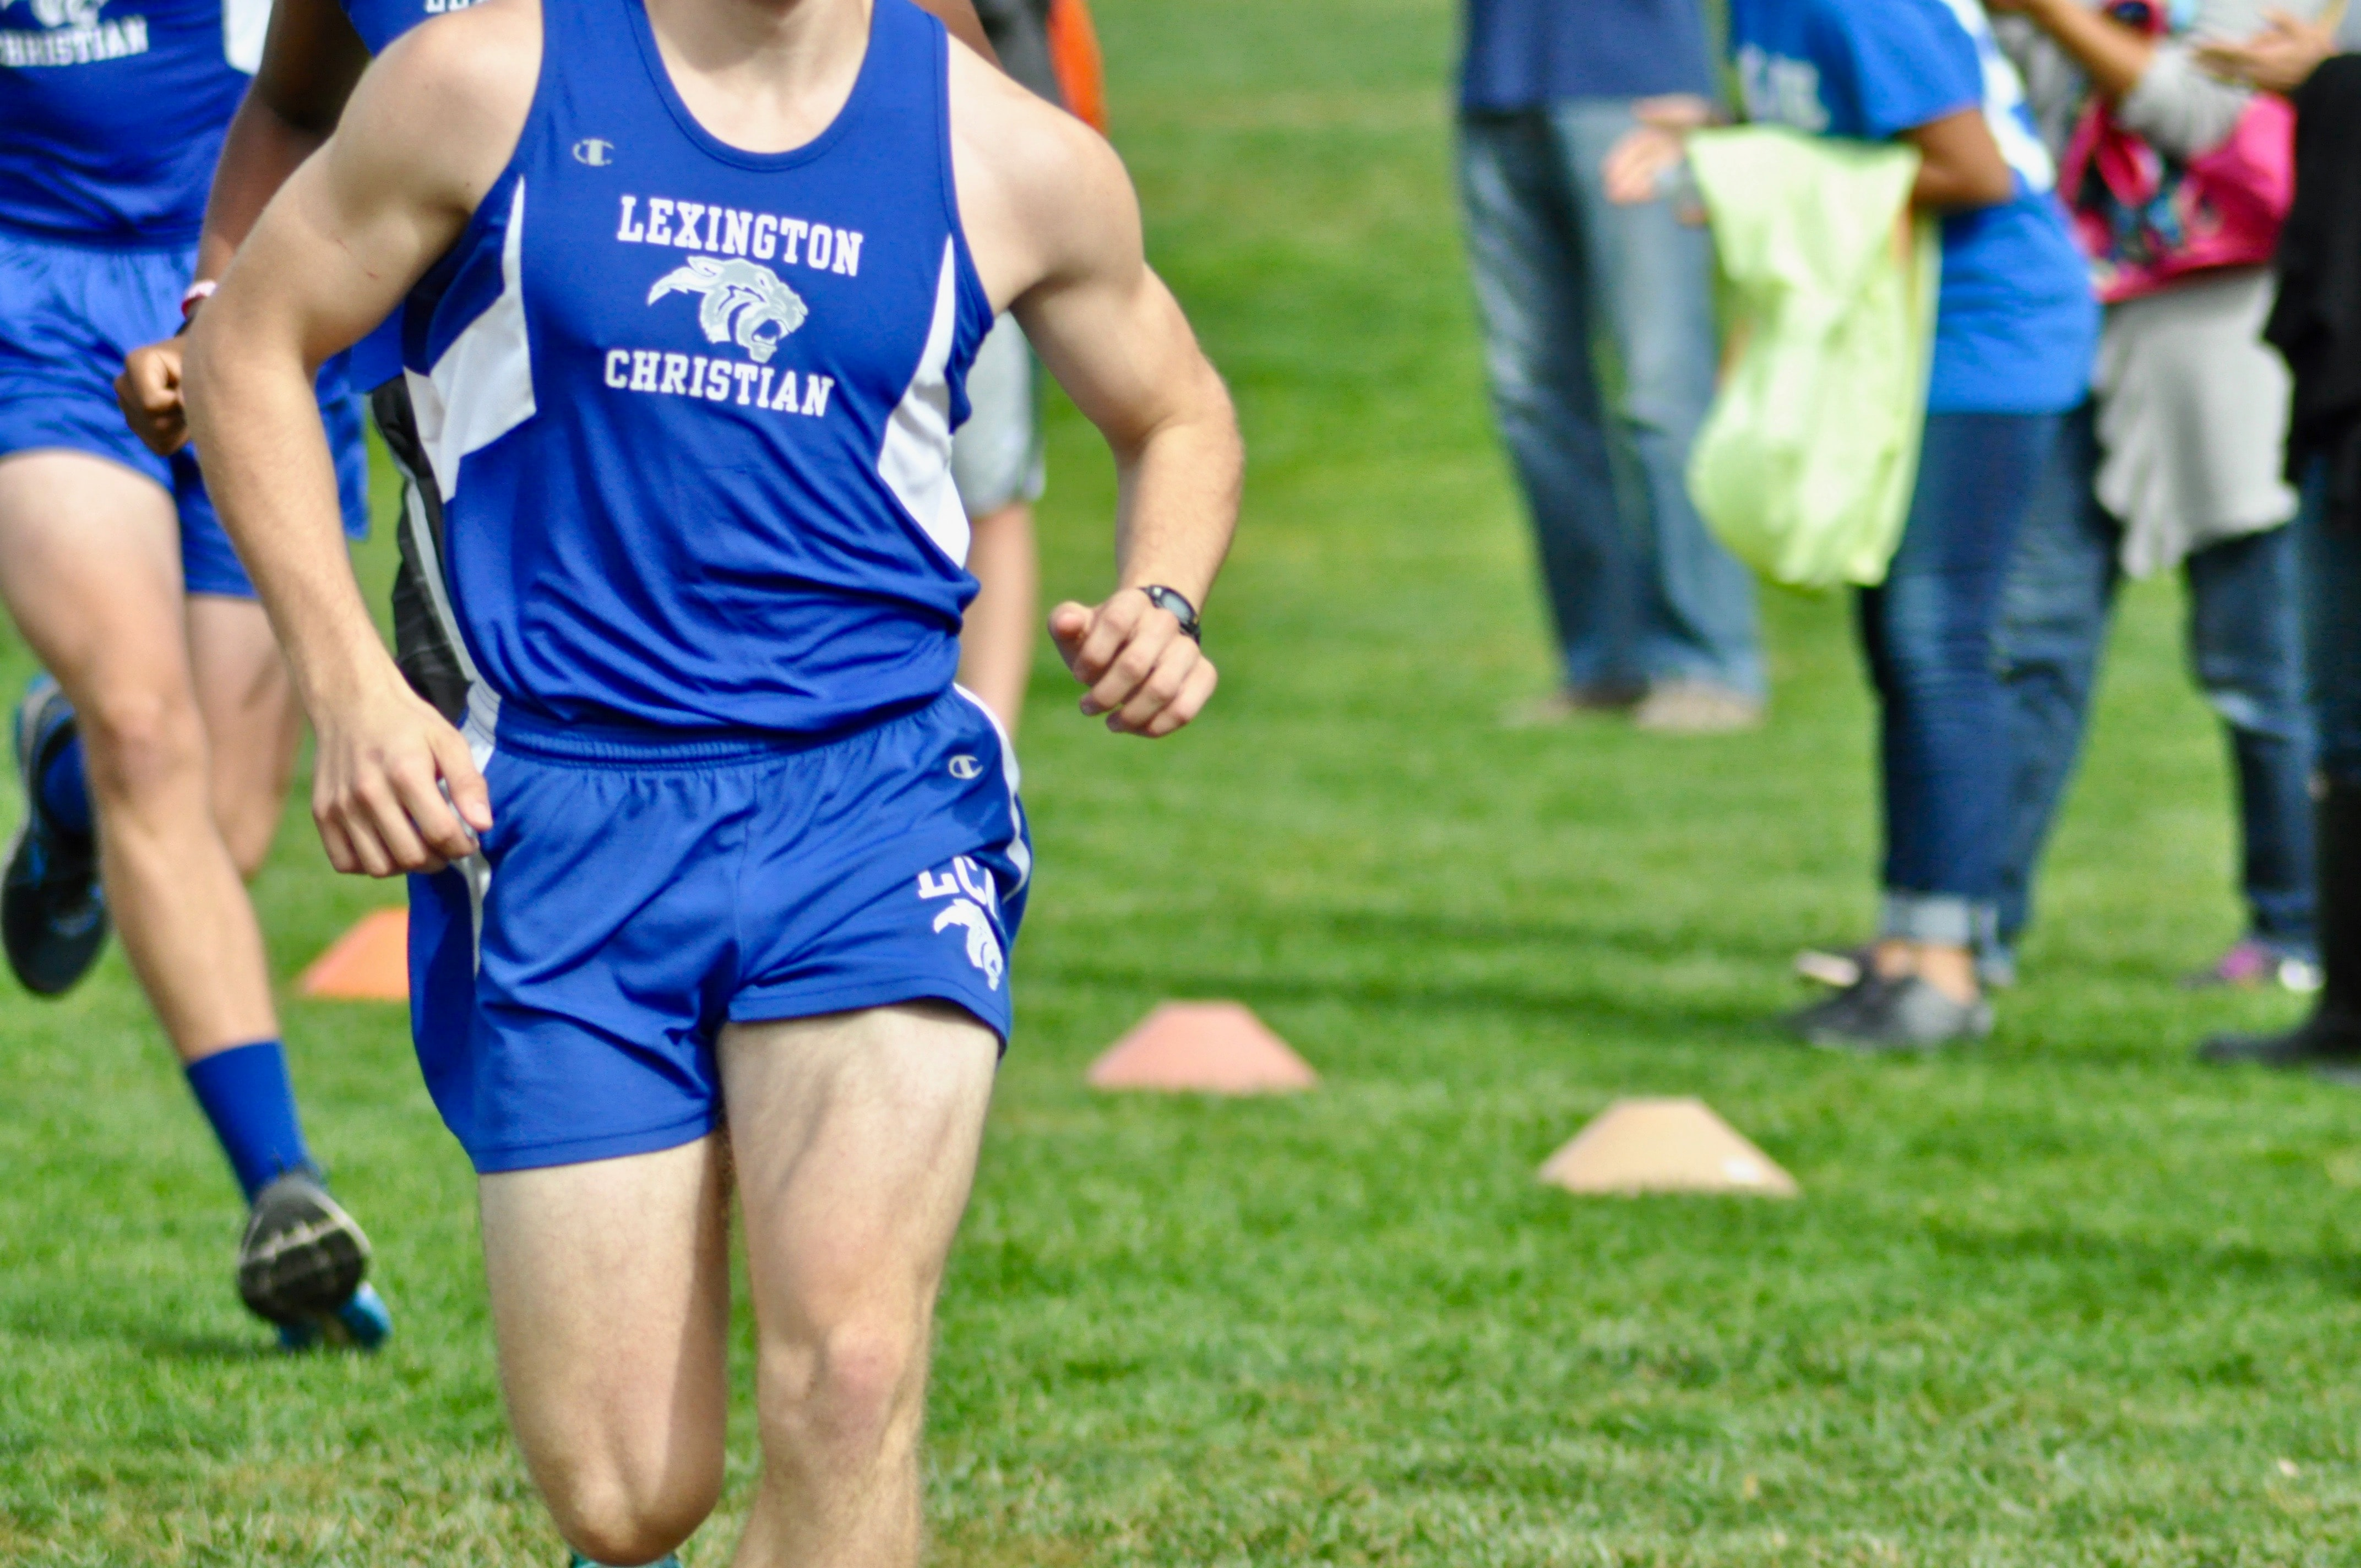 man in blue Champion tank top and shorts running at the field